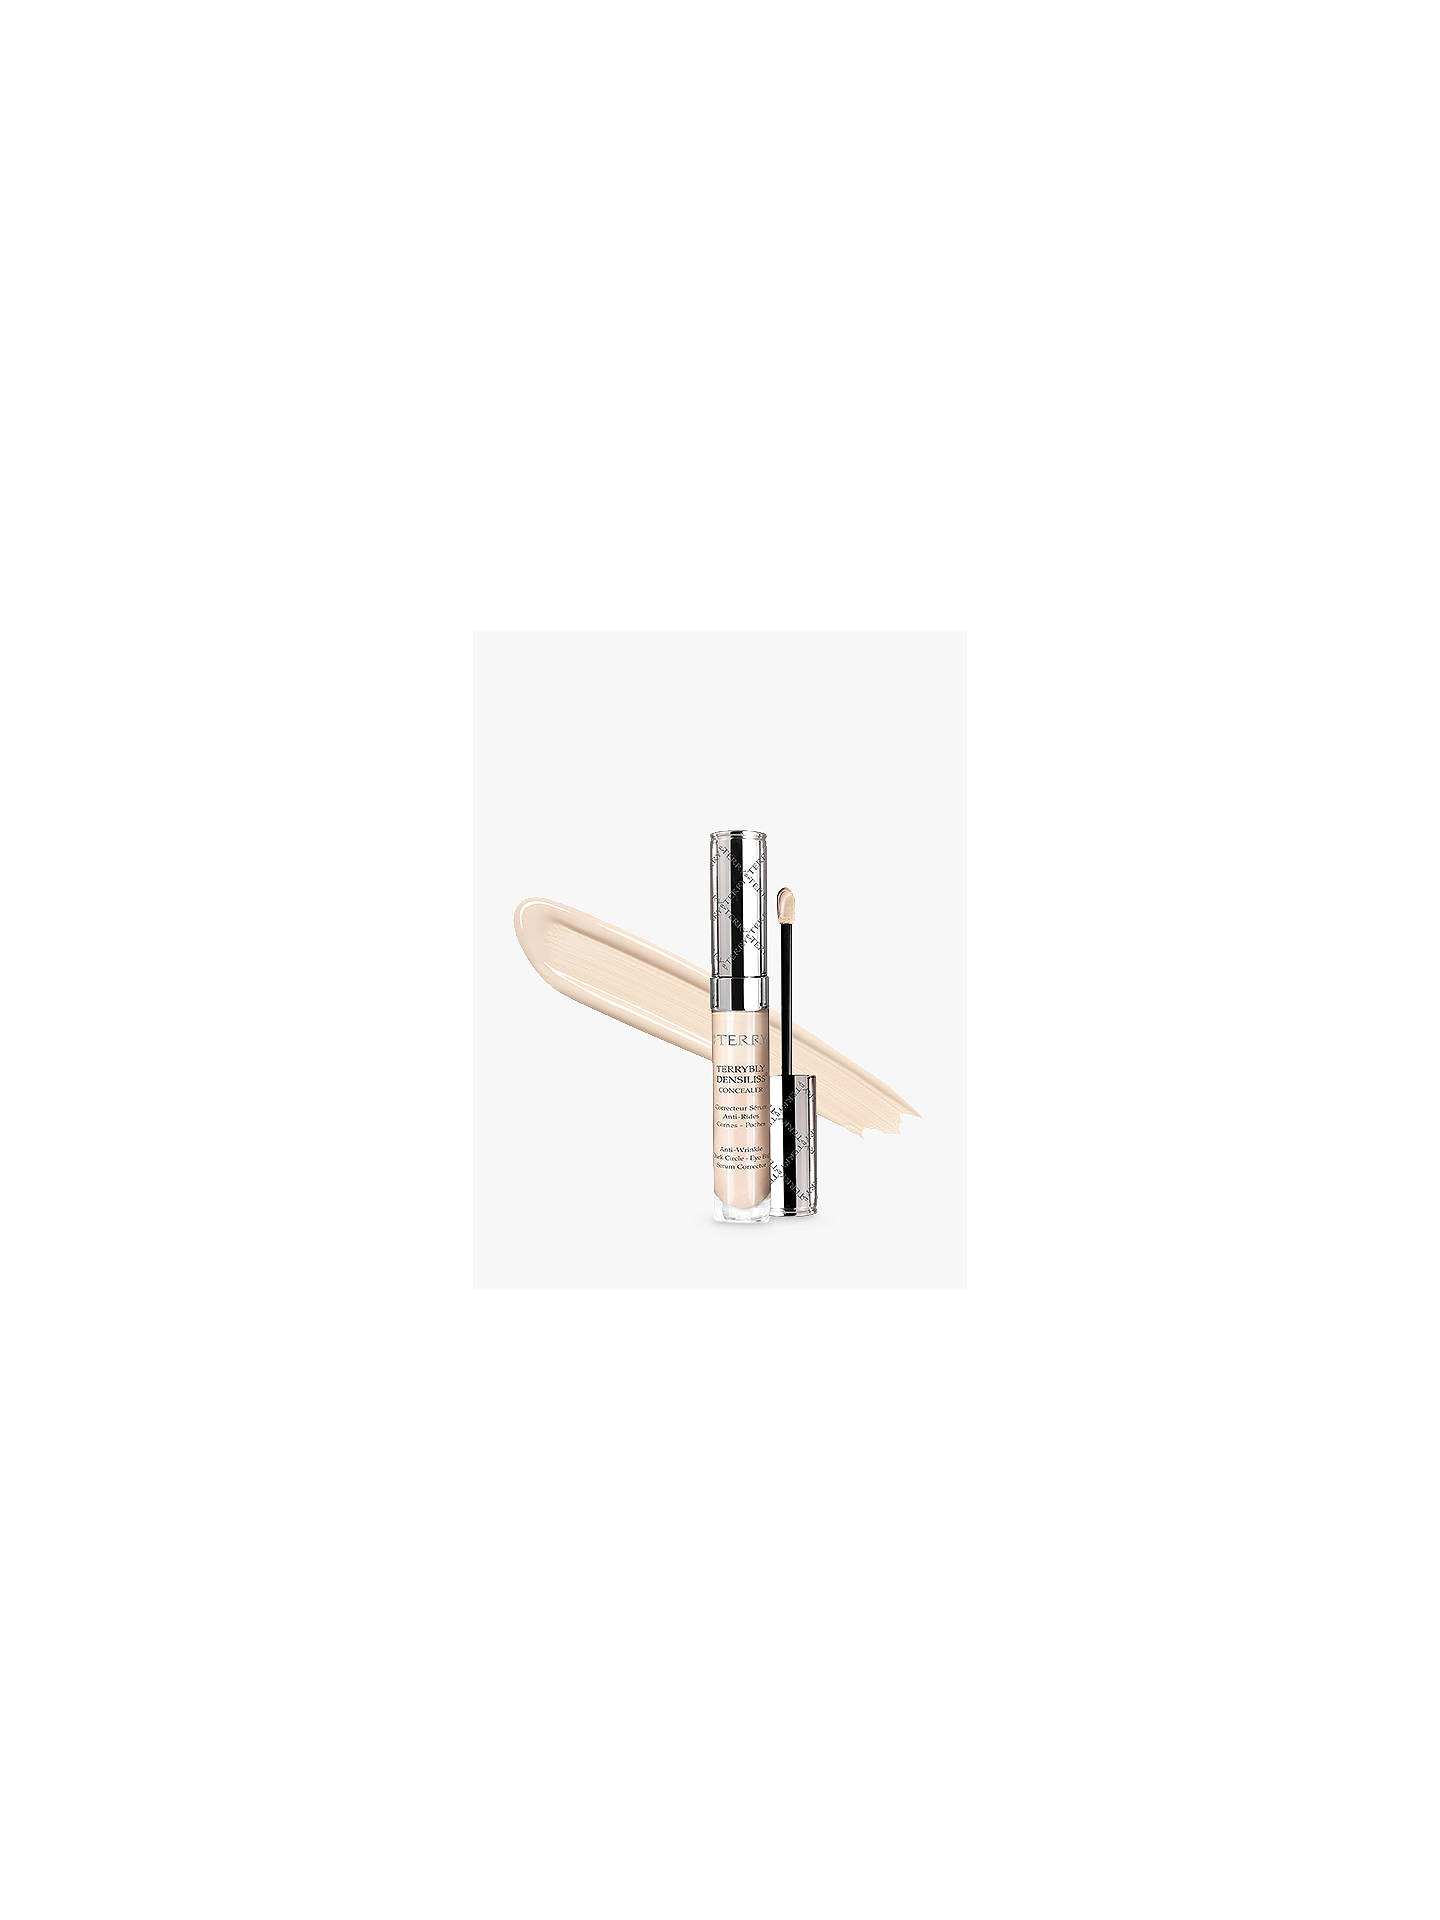 Buy BY TERRY Terrybly Densiliss Concealer Vanilla Beige Online at johnlewis.com